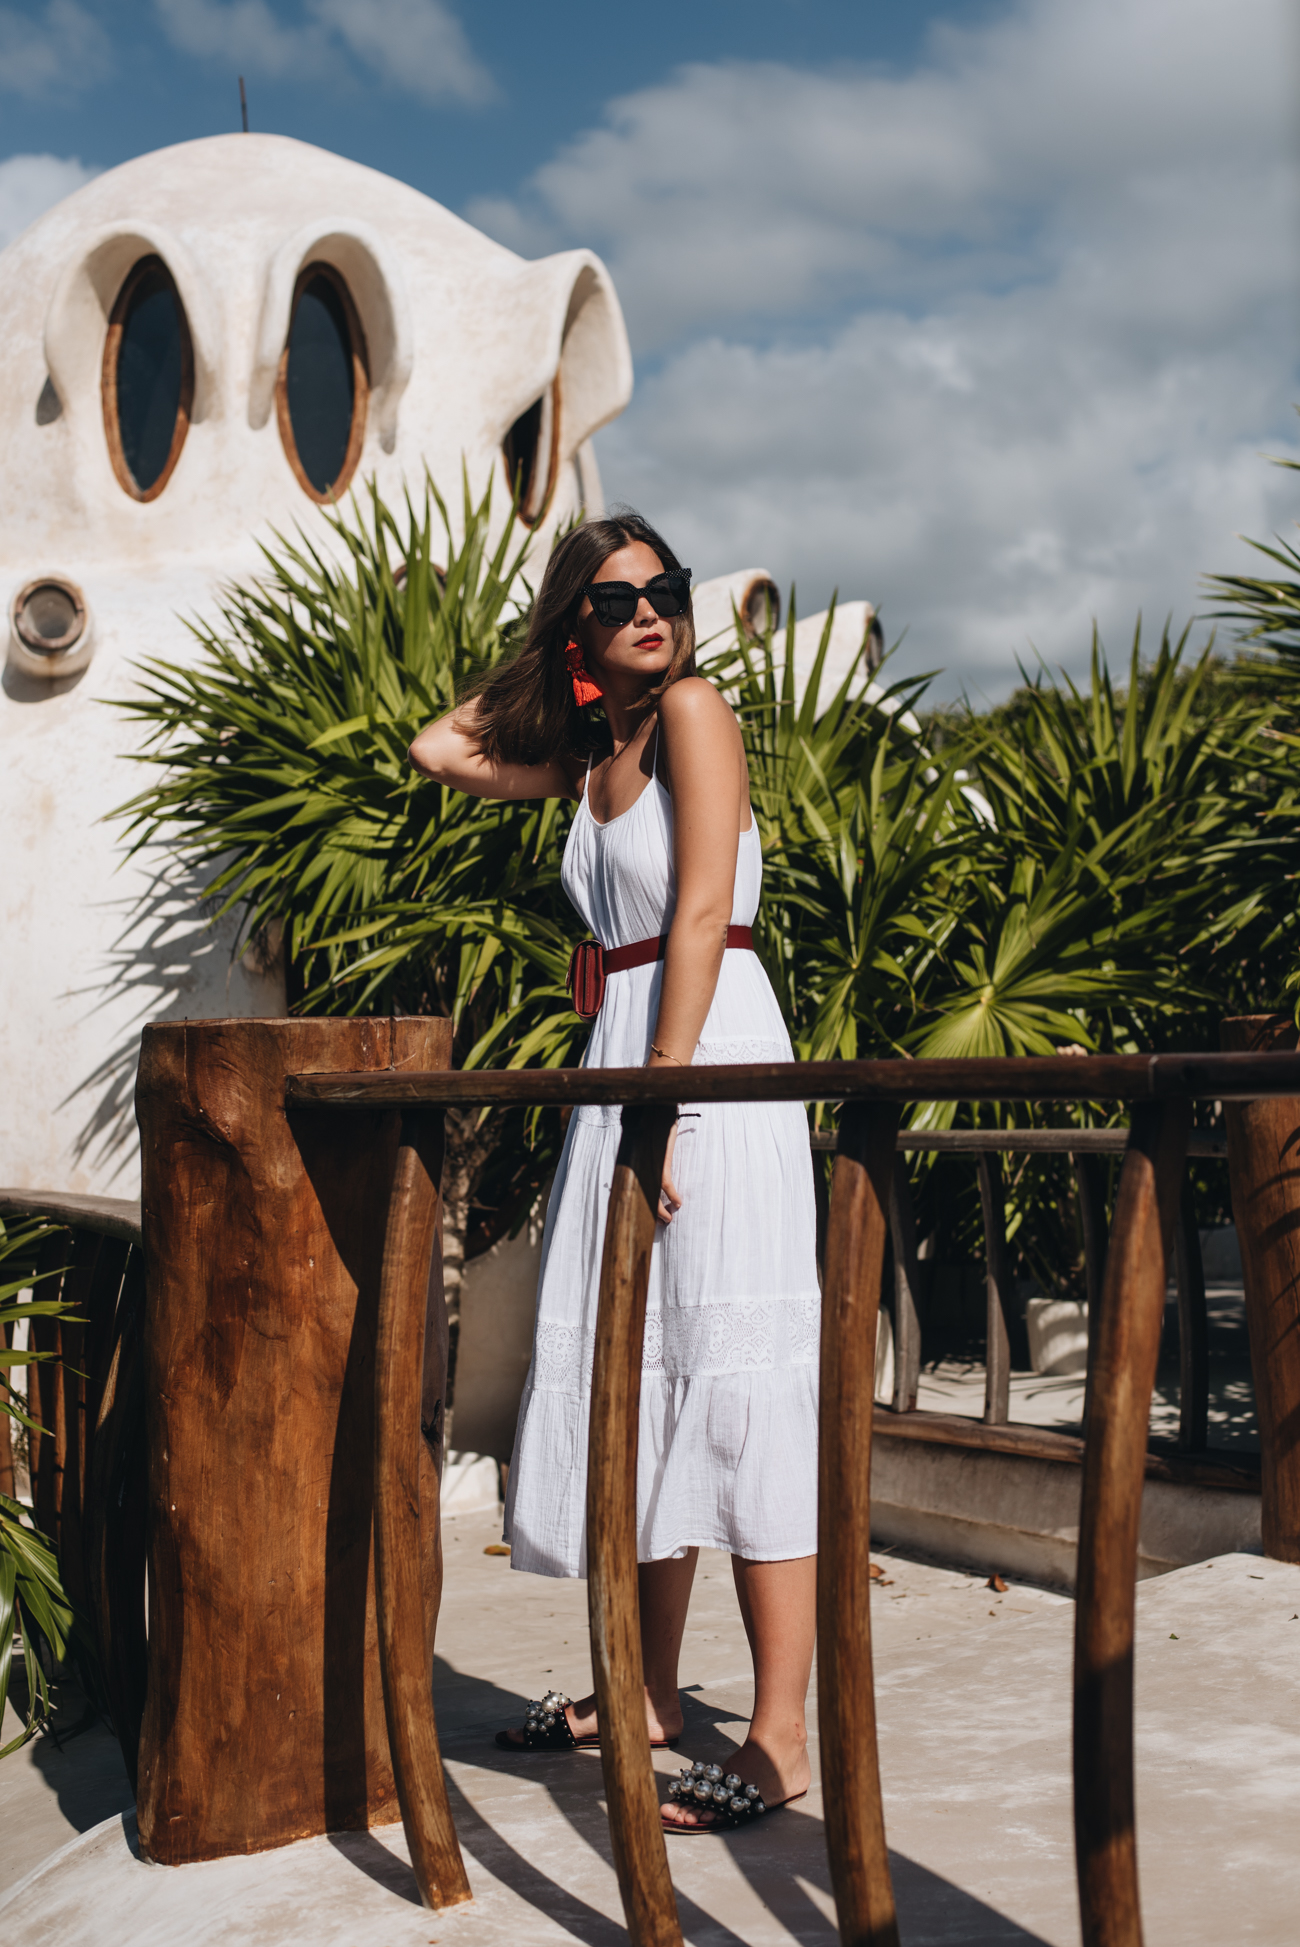 Fashion-Editorial-blogger-Foto-Shooting-Tulum-dschungel-baumhaus-Outdoor-location-nina-schwichtenberg-fashiioncarpet